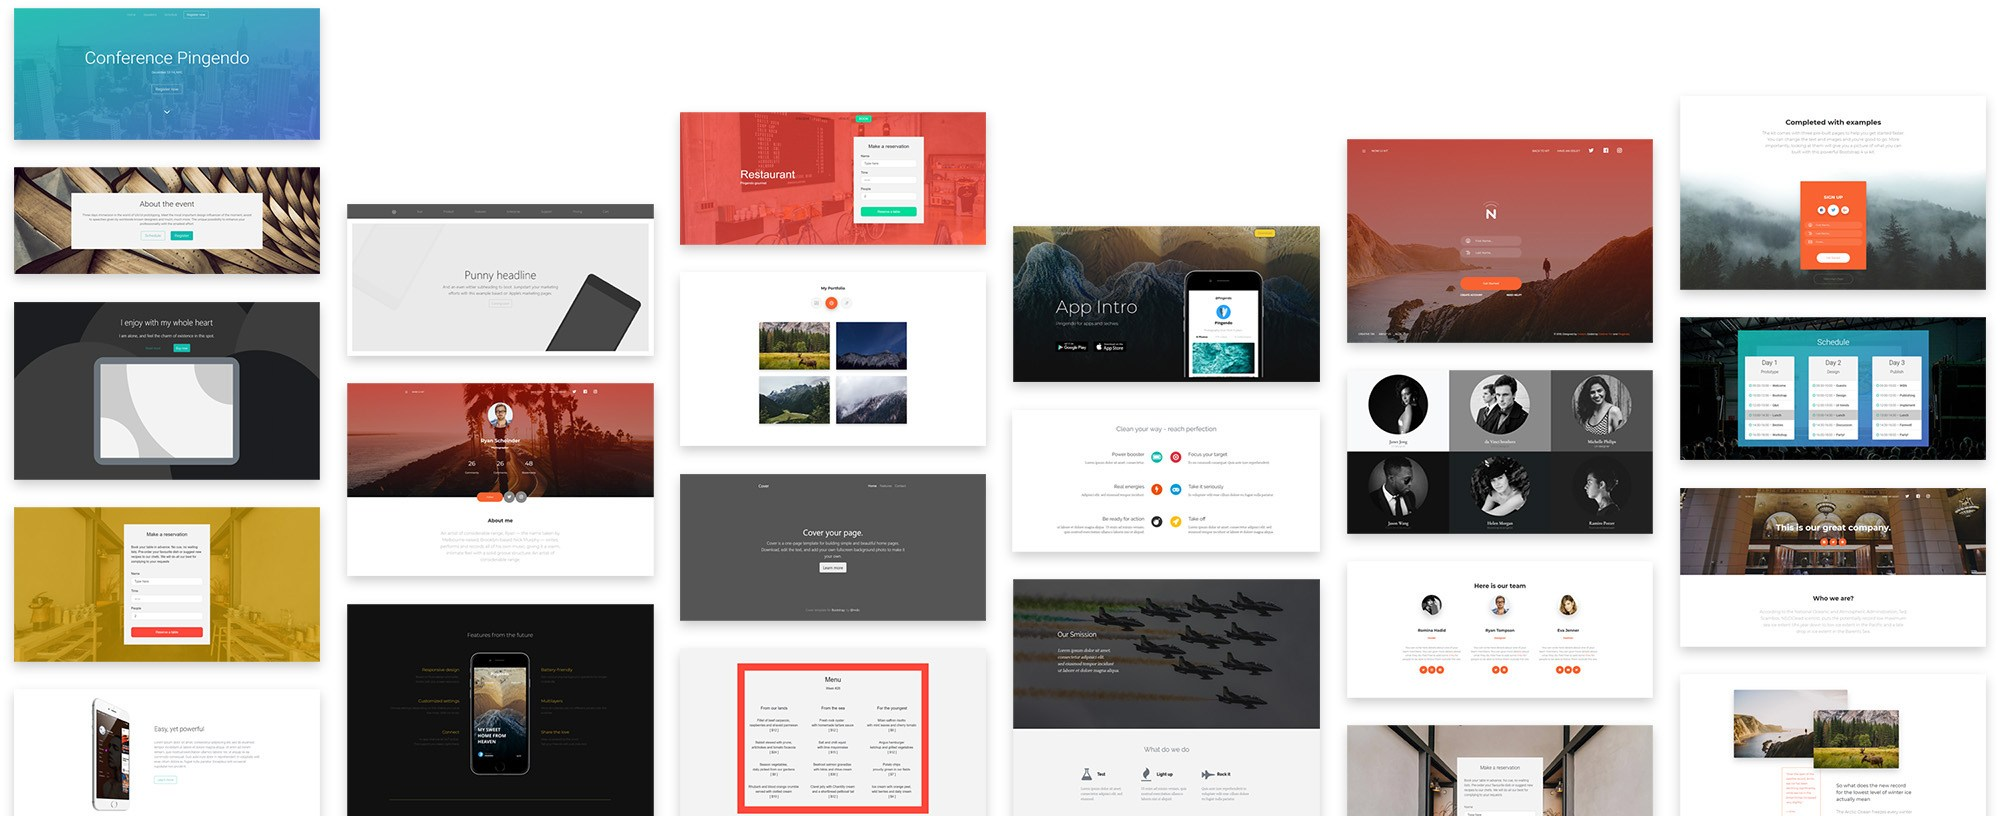 Templates - Free Bootstrap themes and UI kits